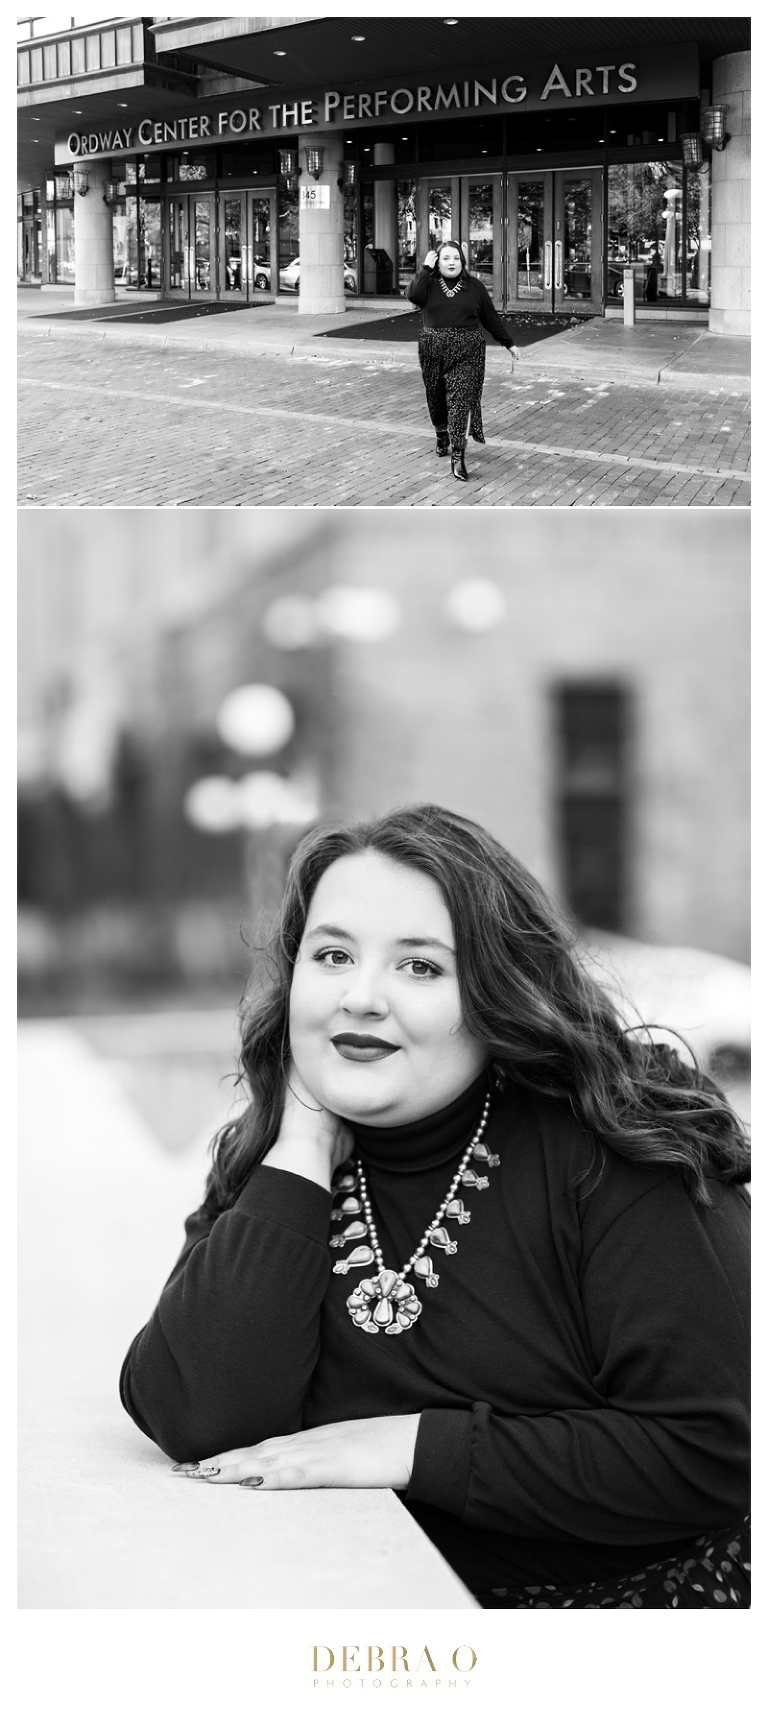 Debra O Photography, hudson senior portrait photographer, Minneapolis senior portrait photographer, minneapolis portrait photographer, Hudson portrait photographer, St. Paul portrait photographer, St. Paul senior session